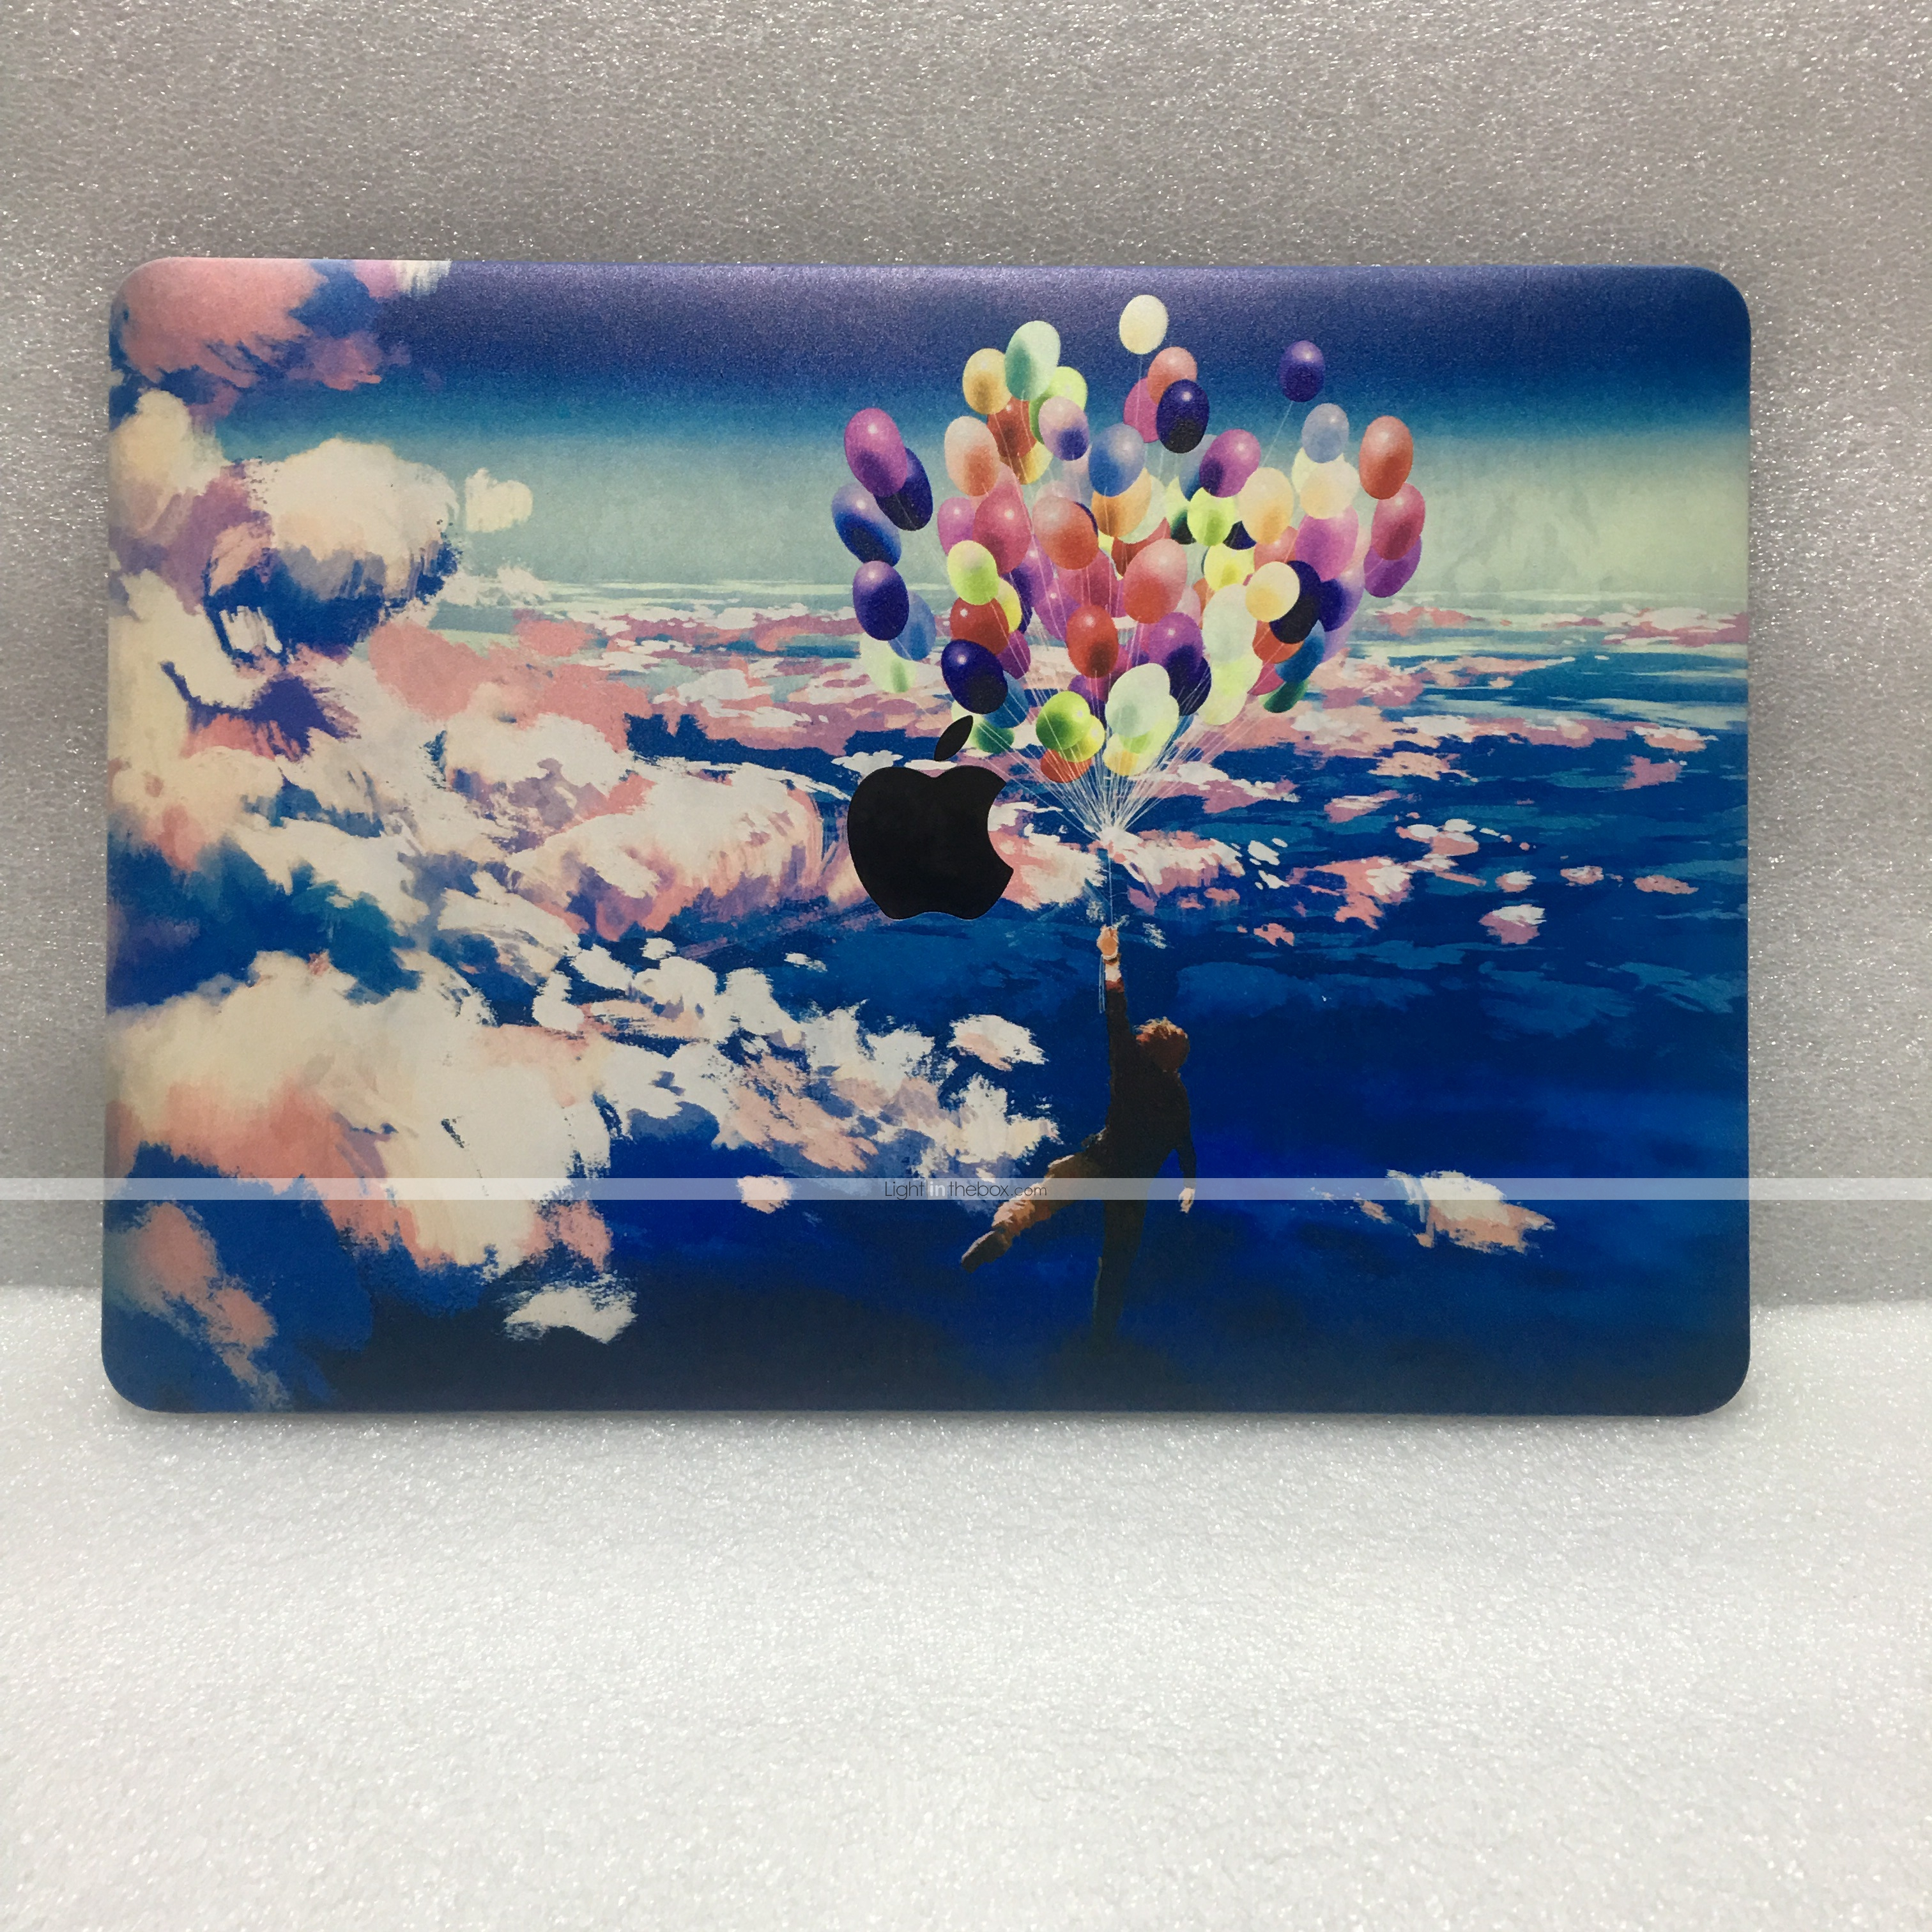 MacBook Case Oil Painting PVC(PolyVinyl Chloride) for New